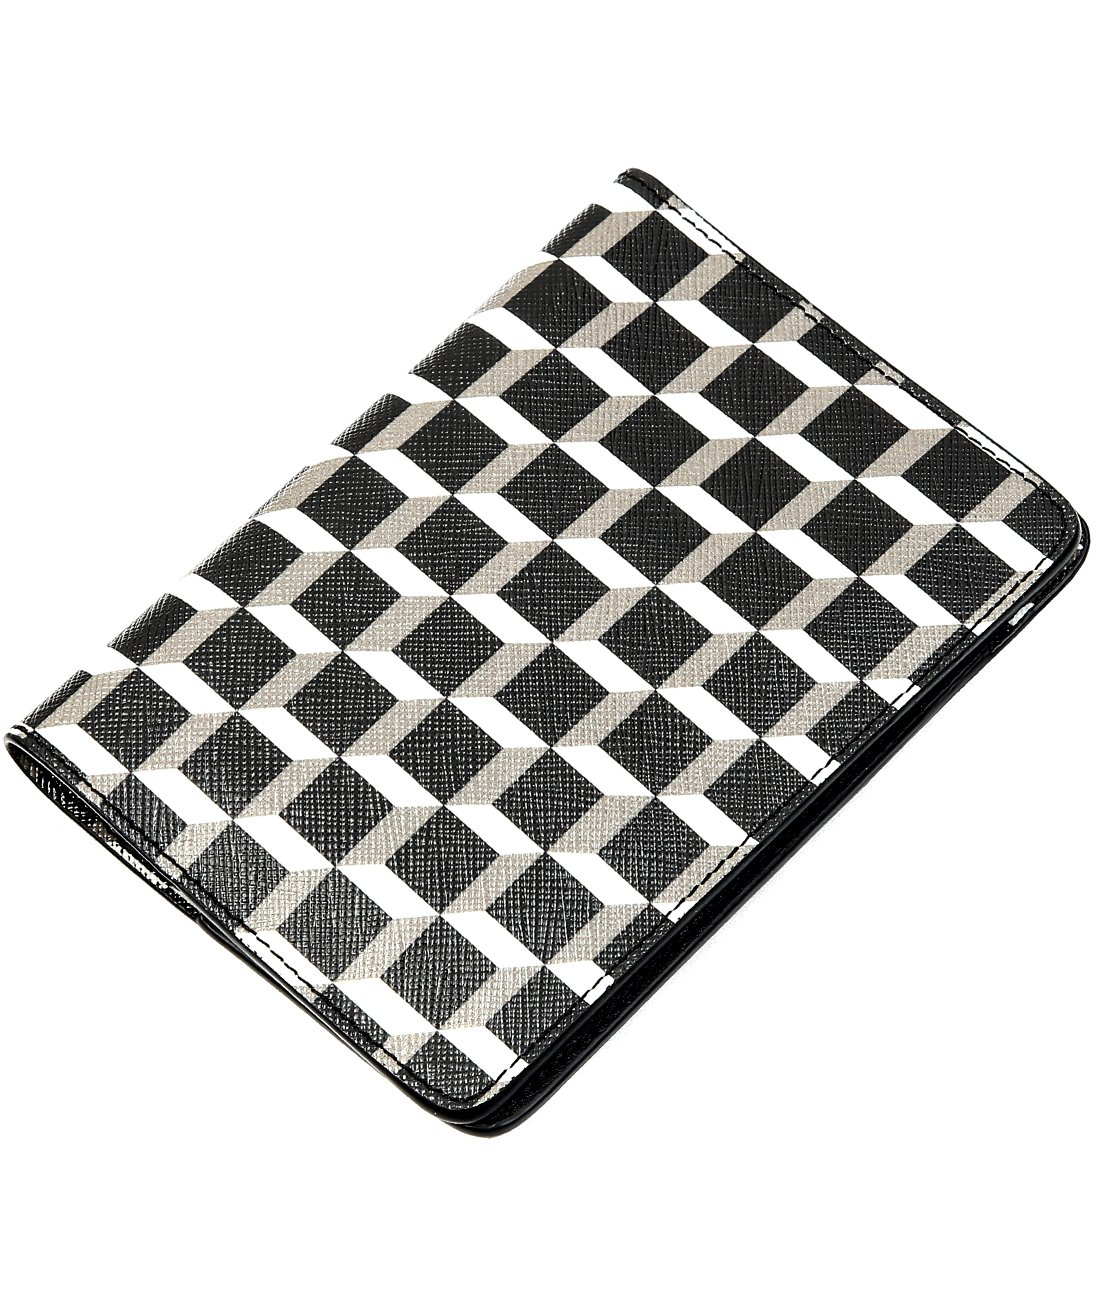 Wiberlux Pierre Hardy Women's Cube Pattern Real Leather Passport Cover One Size Black_White by Wiberlux